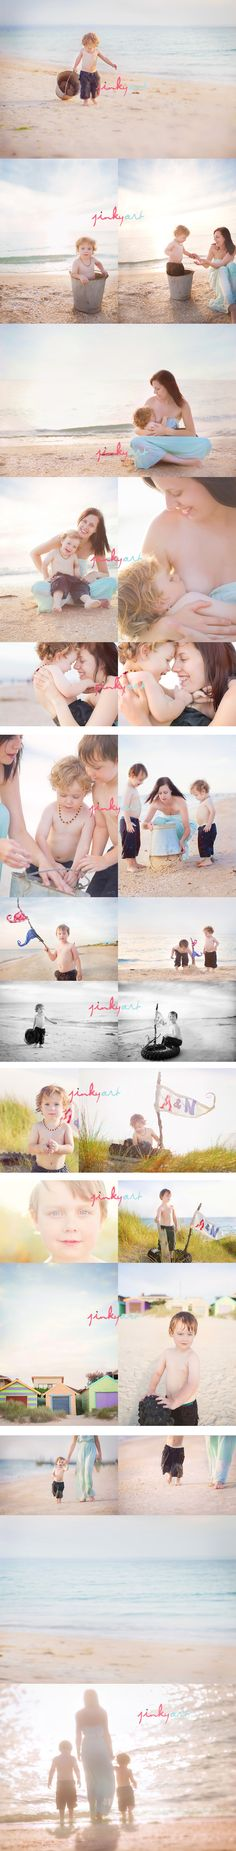 I love love love how naturally the breastfeeding photos are integrated to the rest of this shoot. The whole shoot is wonderfully done.